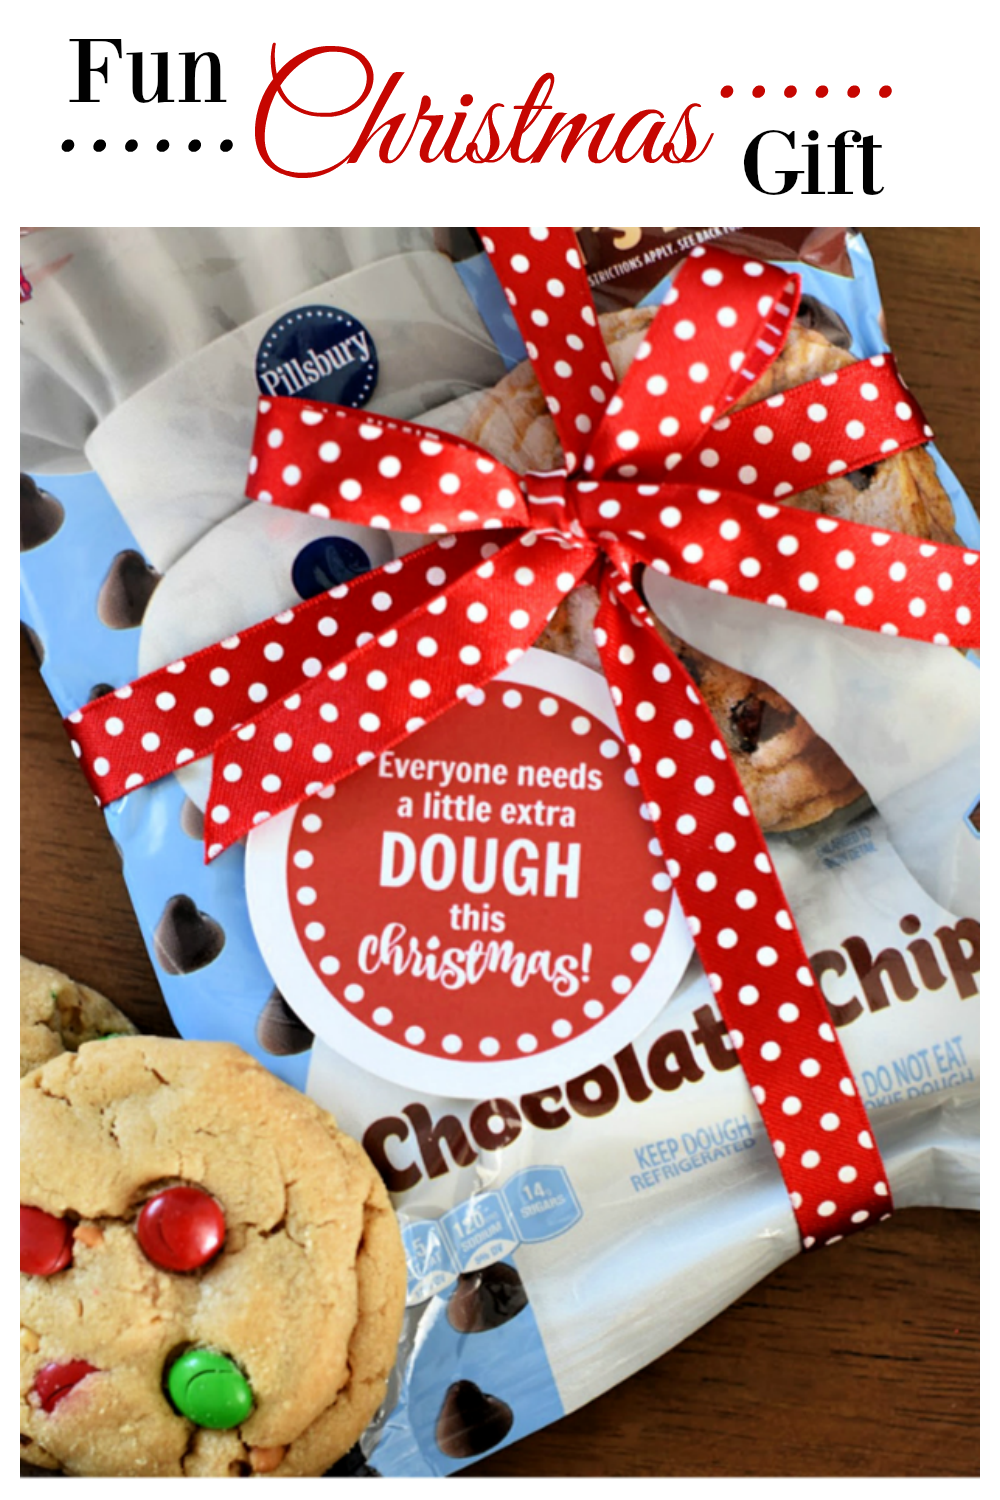 Fun Christmas Gift Idea. This is such a simple gift idea for friends and family, you will love giving everyone a little extra dough! #gifts #christmasgift #neighborgift #fungiftidea